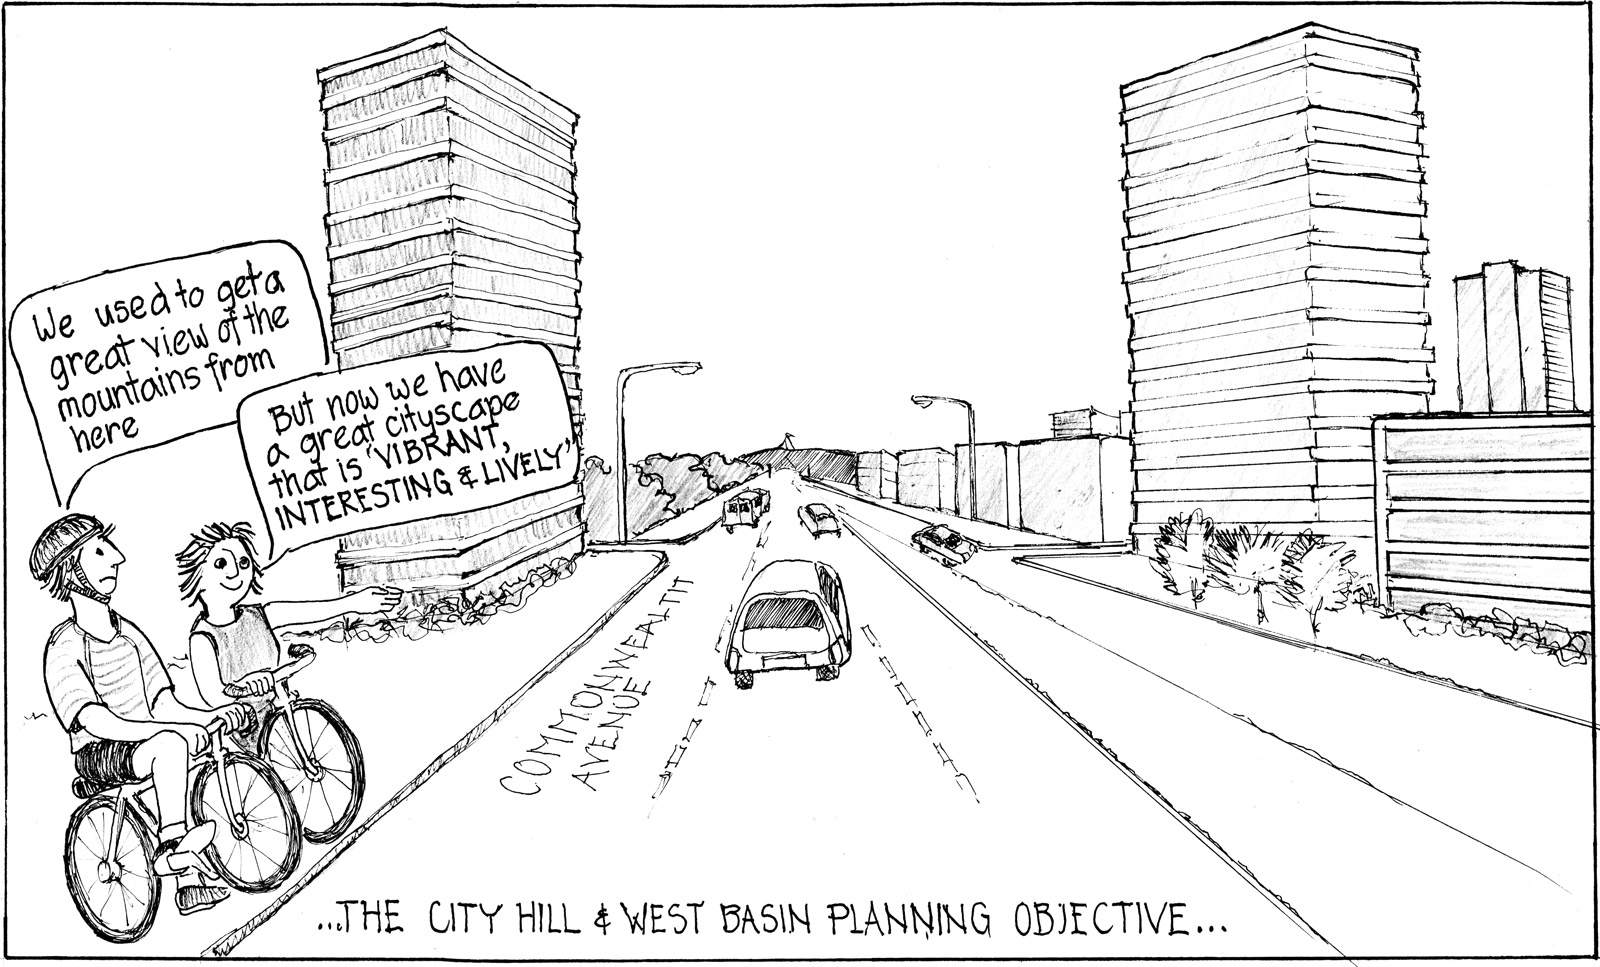 City Hill to West Basin Future Prospect (drawn by J. Ramsay)